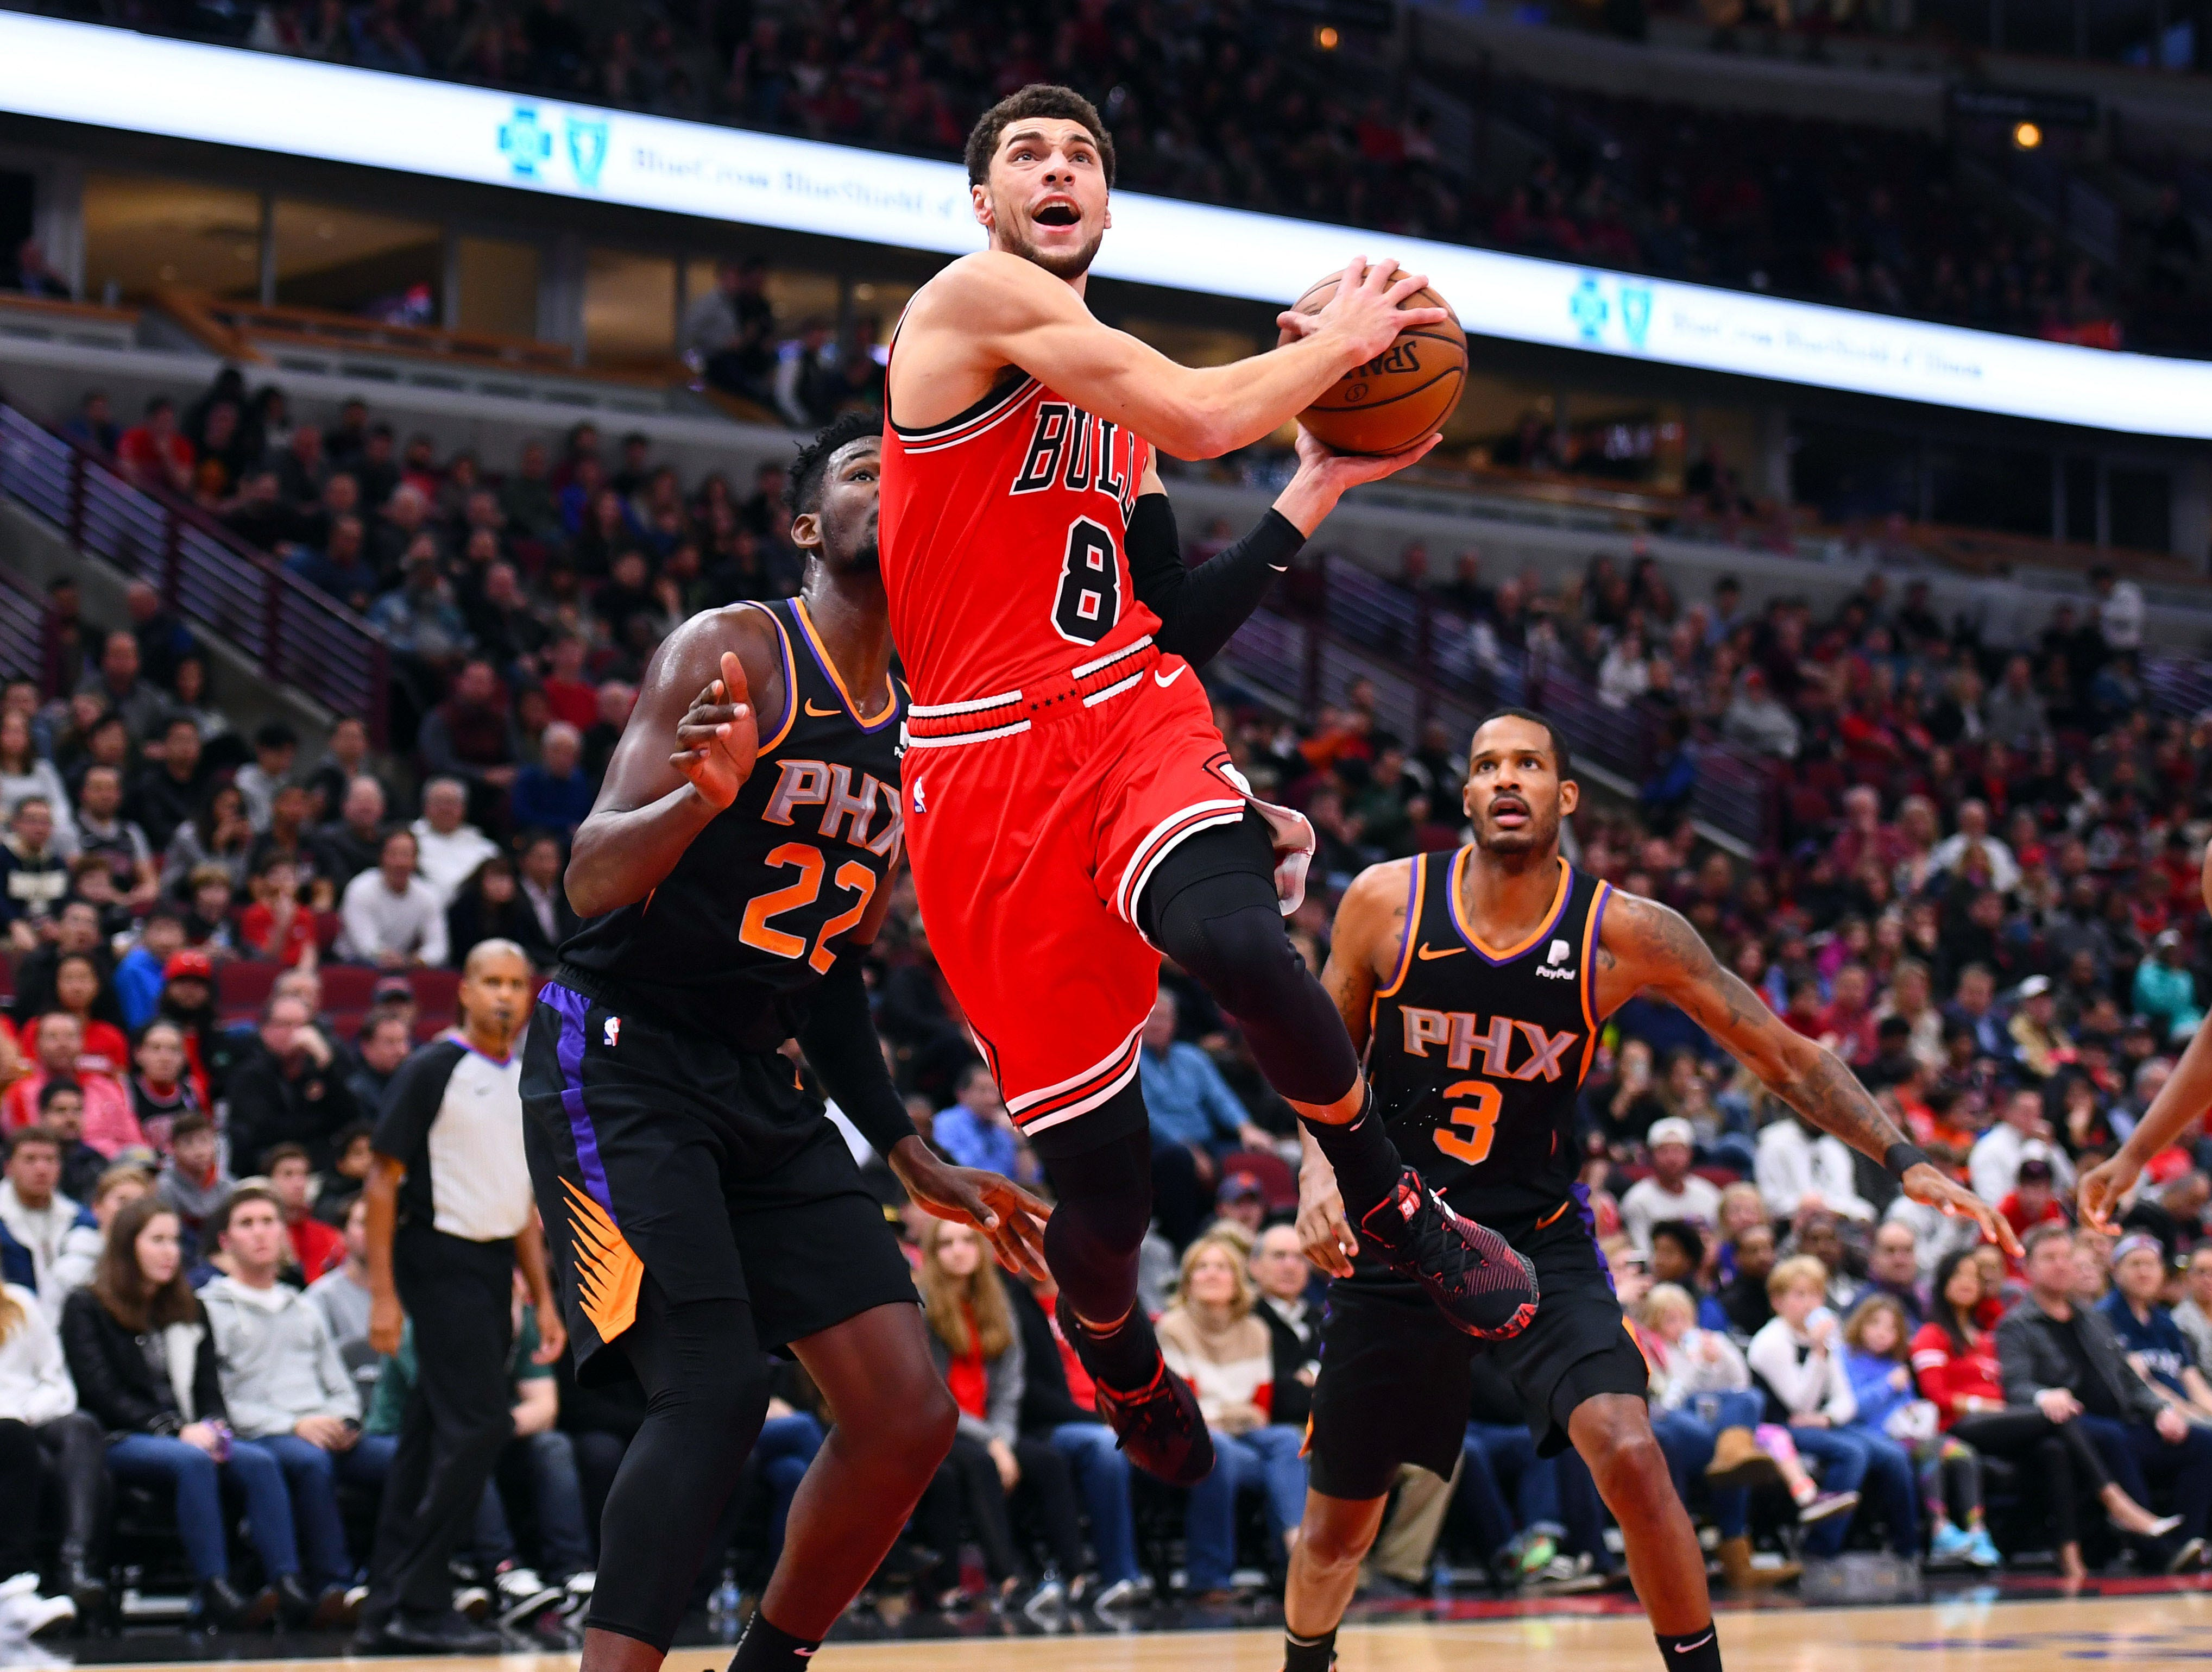 Bulls guard Zach LaVine drives to the basket during the first half of a game Nov. 21 against the Suns at the United Center.